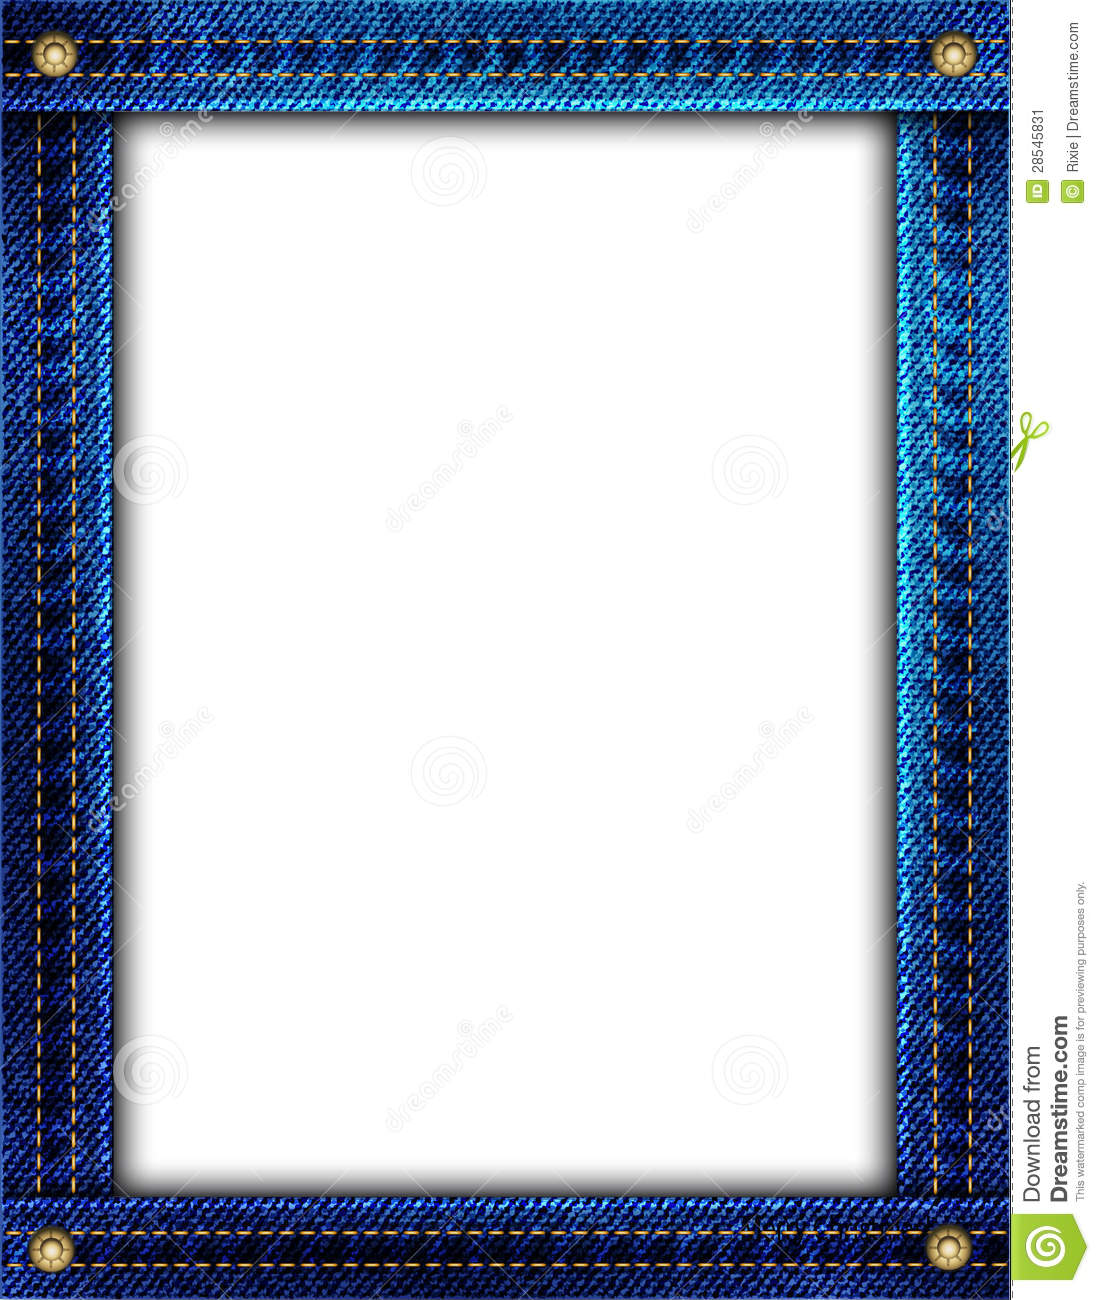 blue denim frame with space for your image or text.